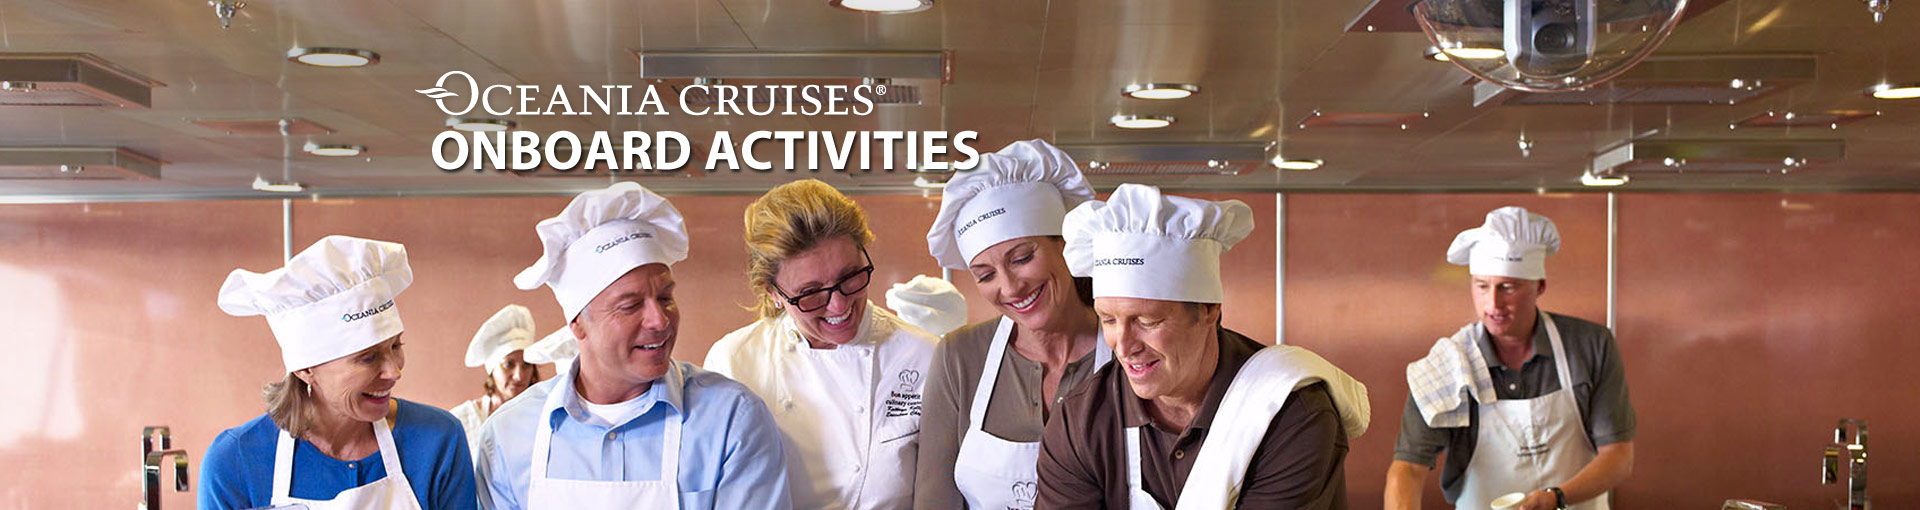 Oceania Cruises Onboard Activities